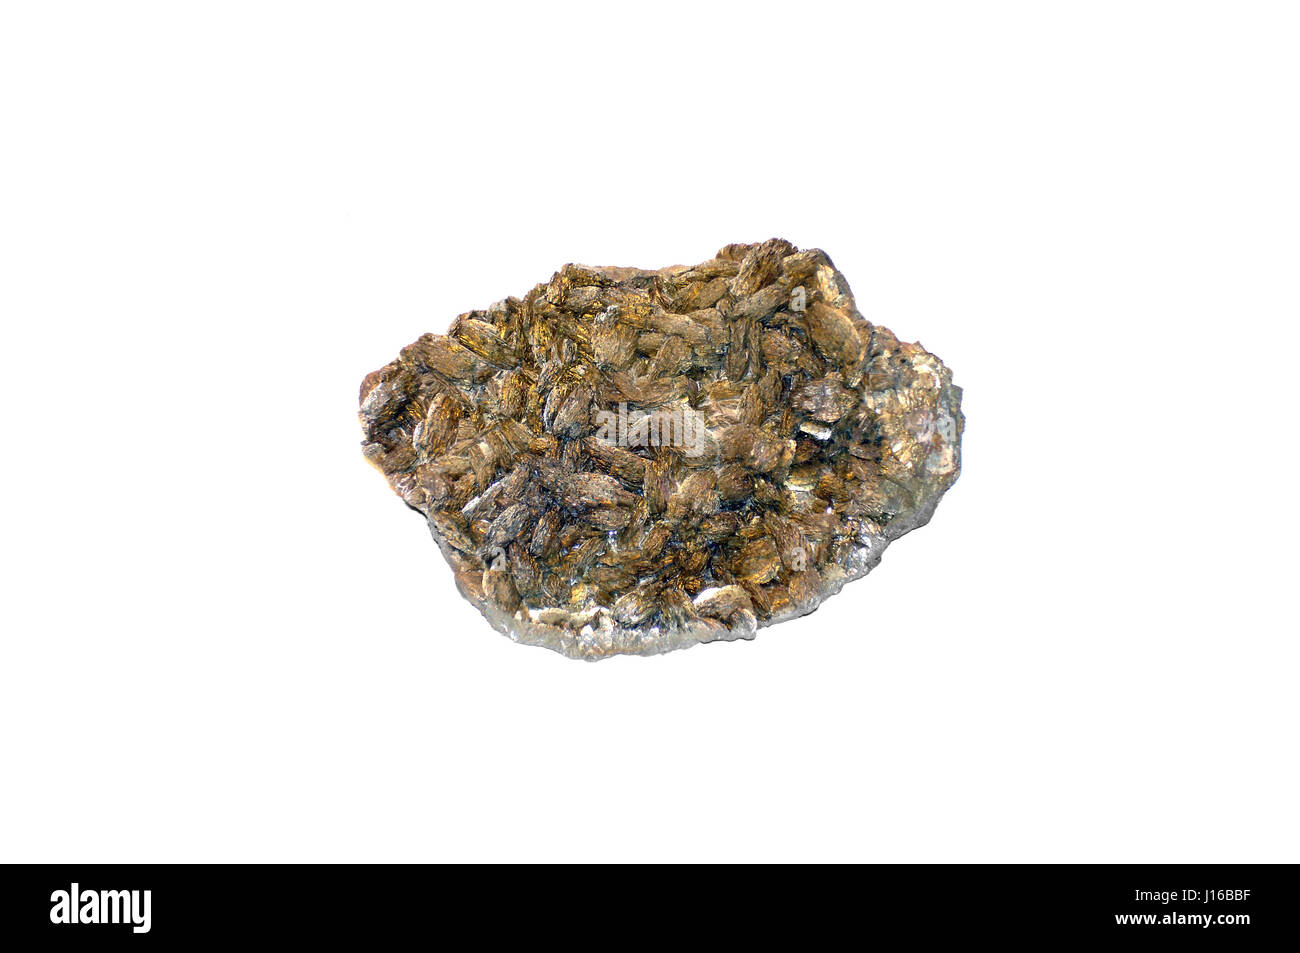 barite mineral on isolated white background (Poehl, germany) - Stock Image